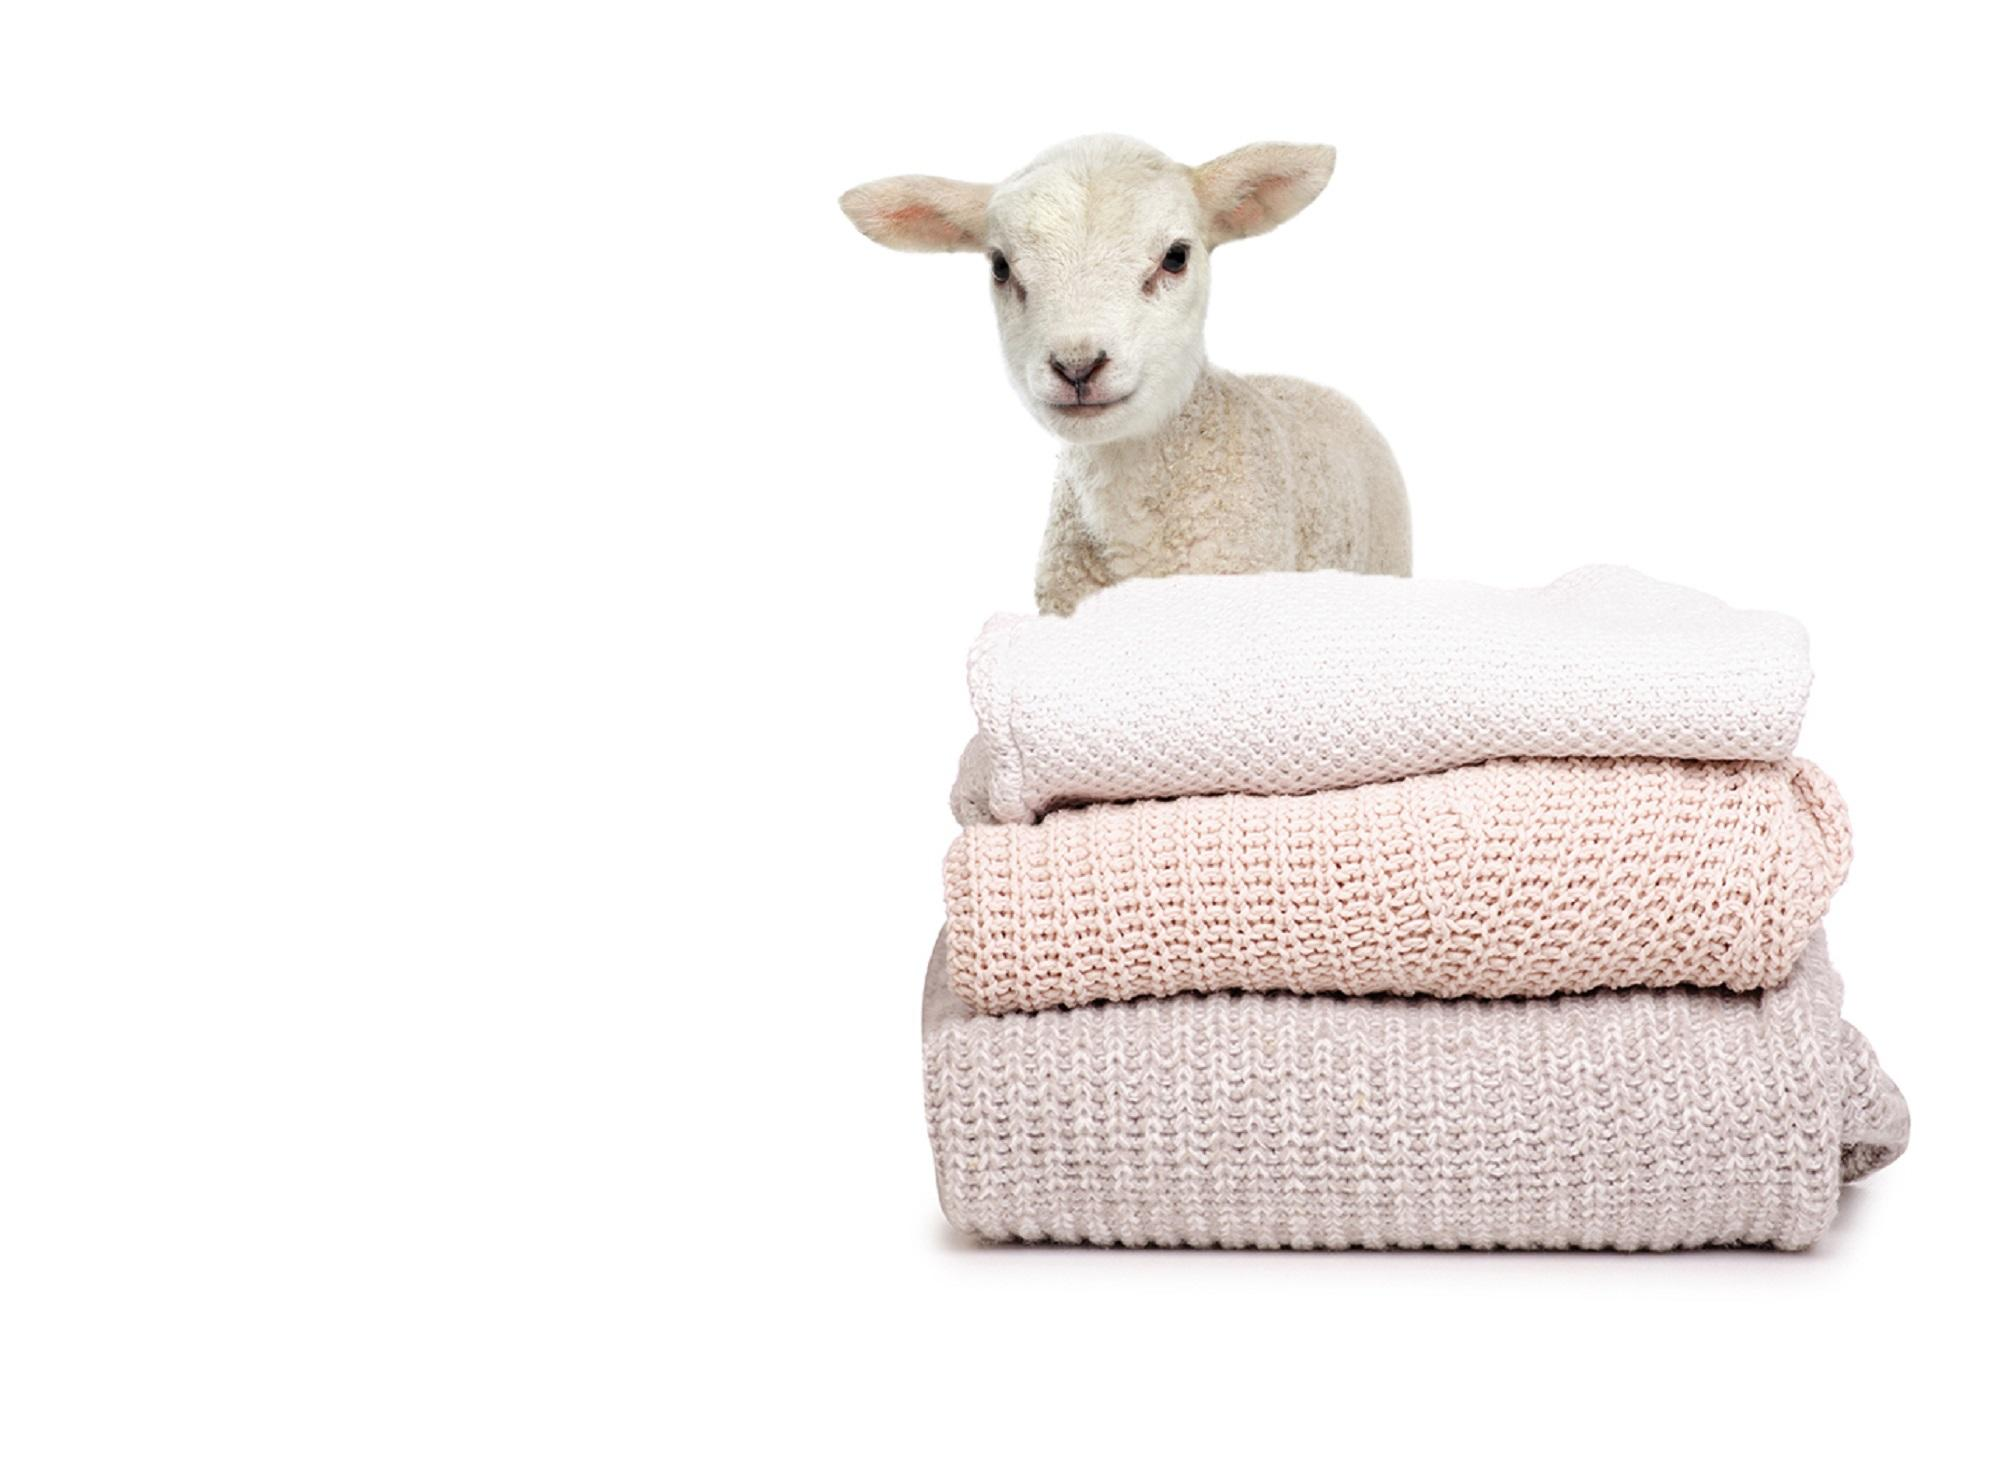 Animal Charity Lamb with Jumpers